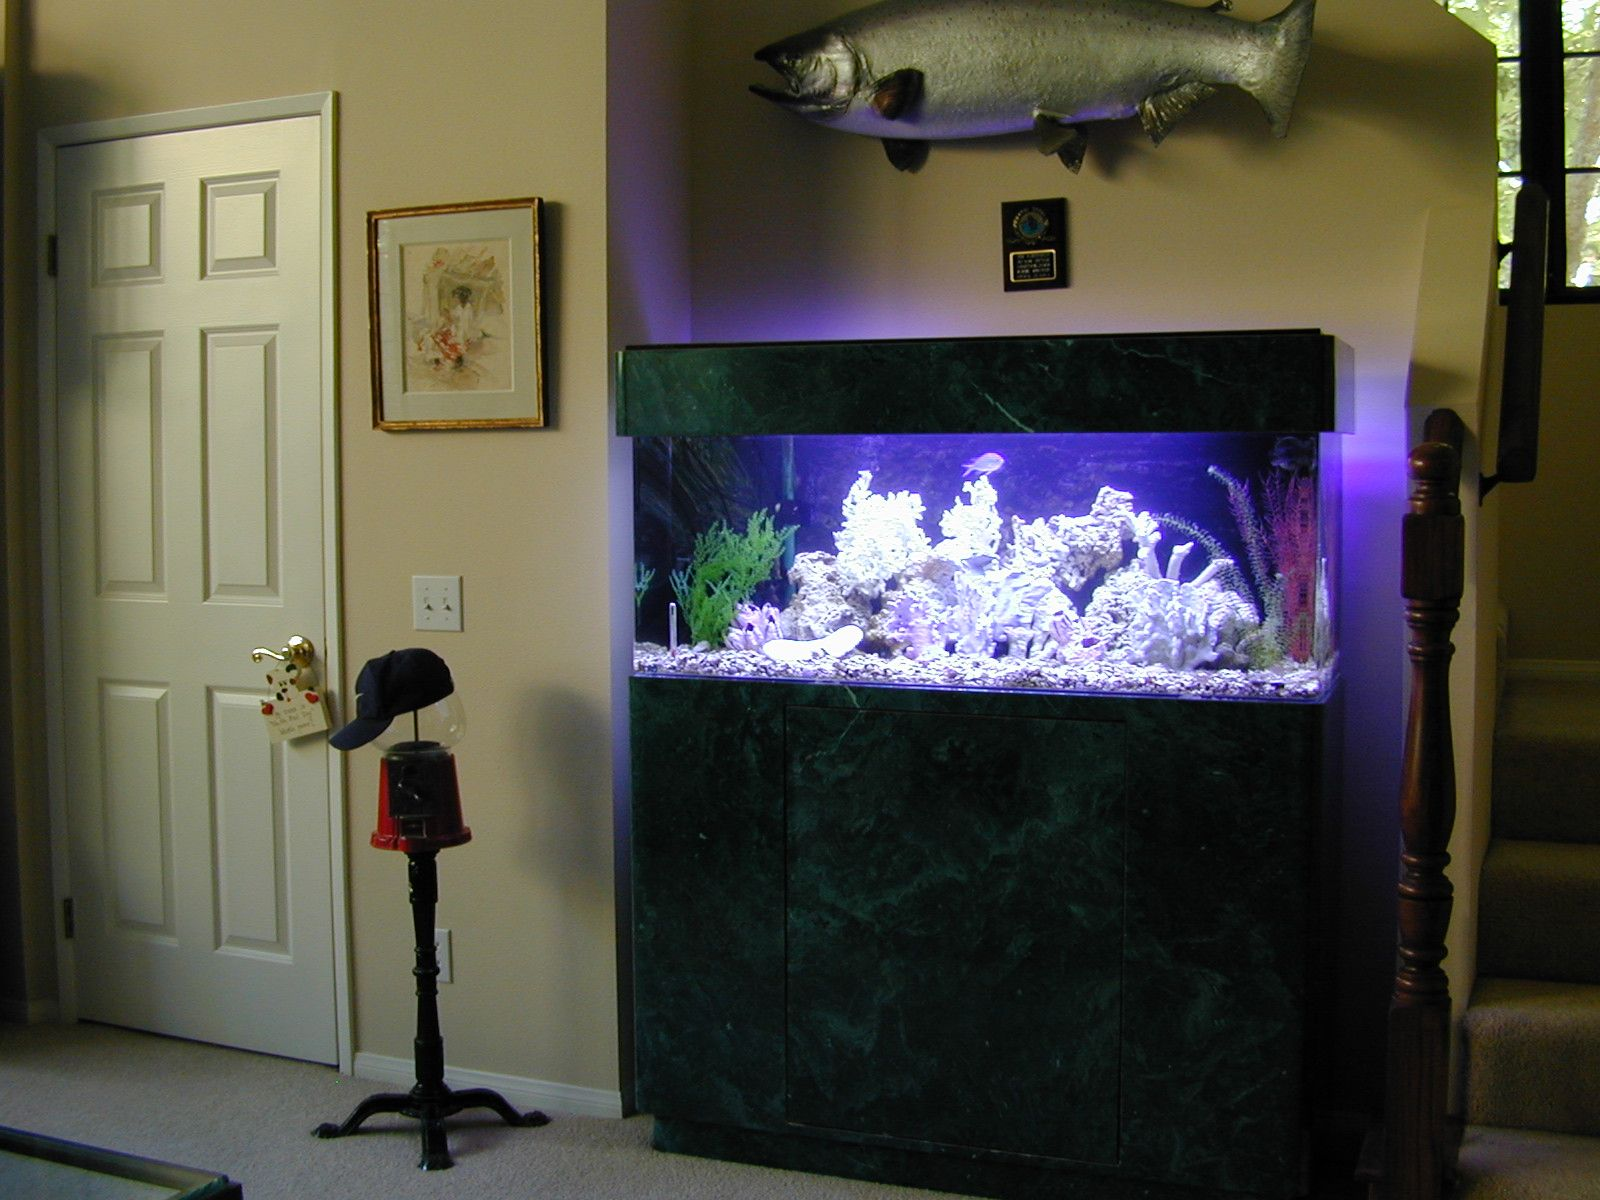 60 Gallon Marine Fish Tank, Aquarium Design, Marine Aquariums and .